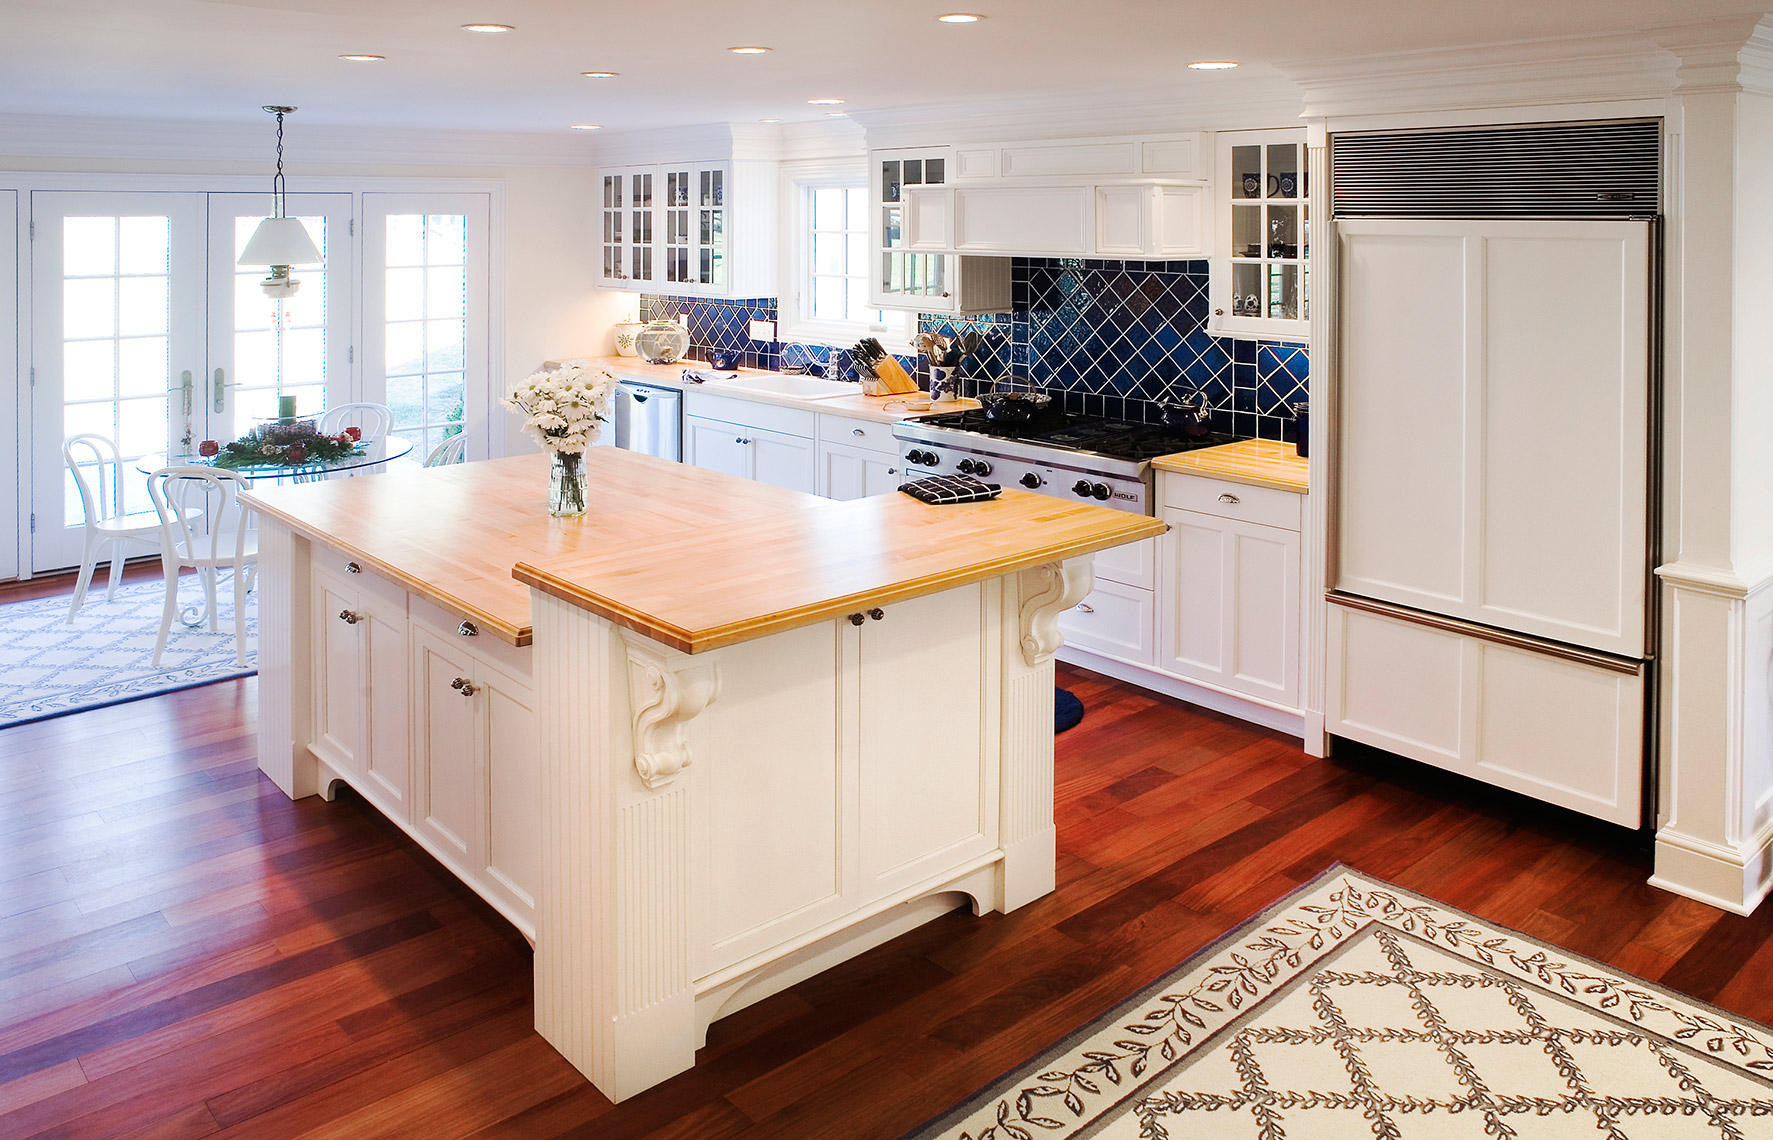 custom kitchen remodels bucks county nj-Country Kitchen Painted Finish